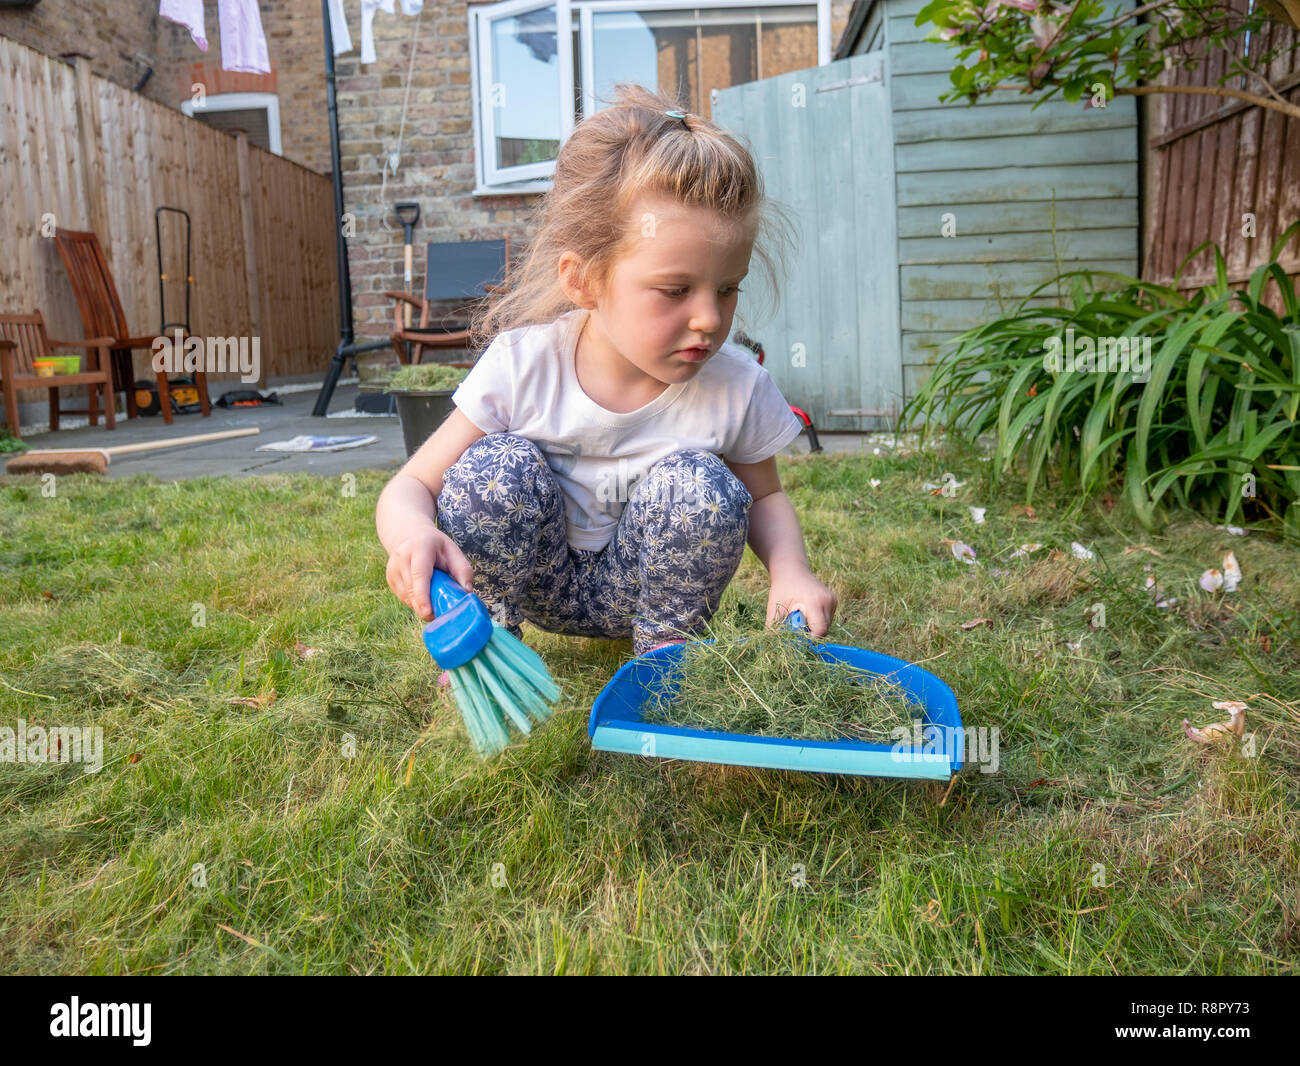 Three year old girl sweeping up cut grass in the back garden, London, UK - Stock Image